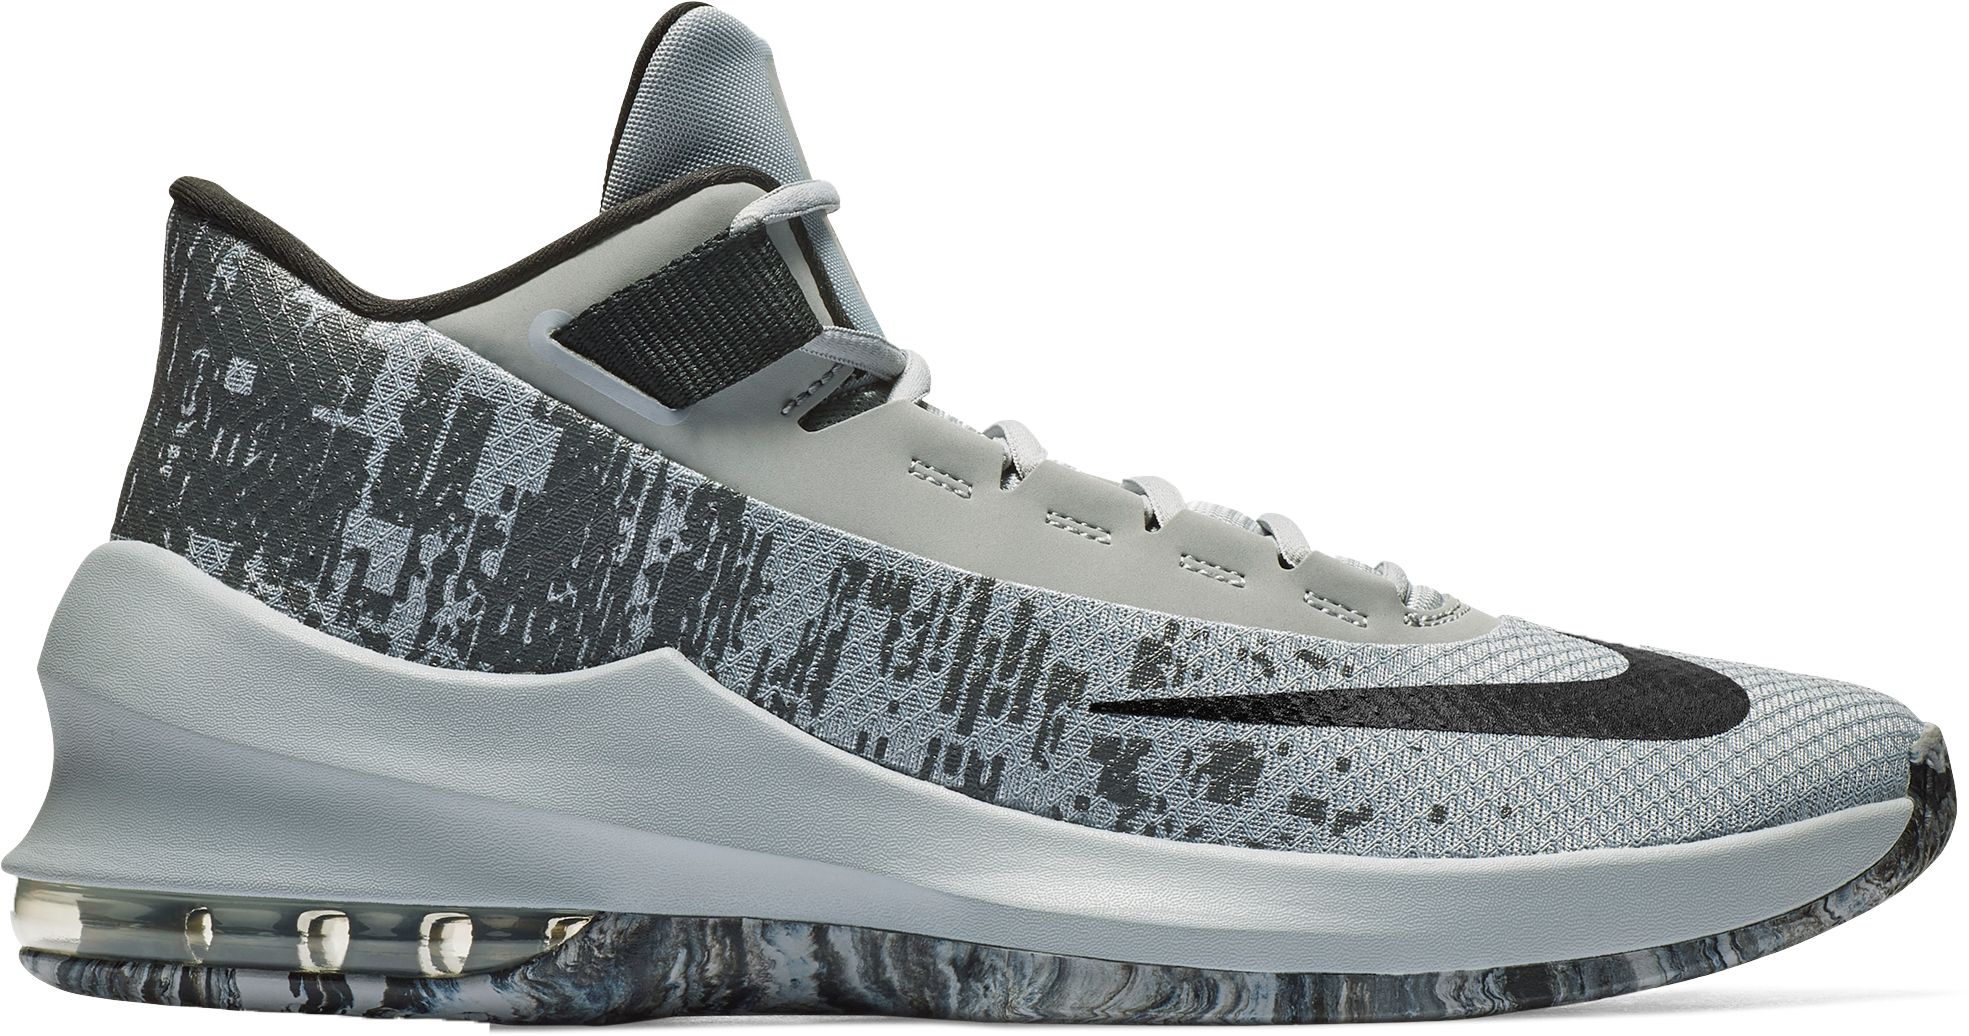 41afaf0670 Nike Air Max Infuriate 2 Mid Basketball Shoes | DICK'S Sporting ...